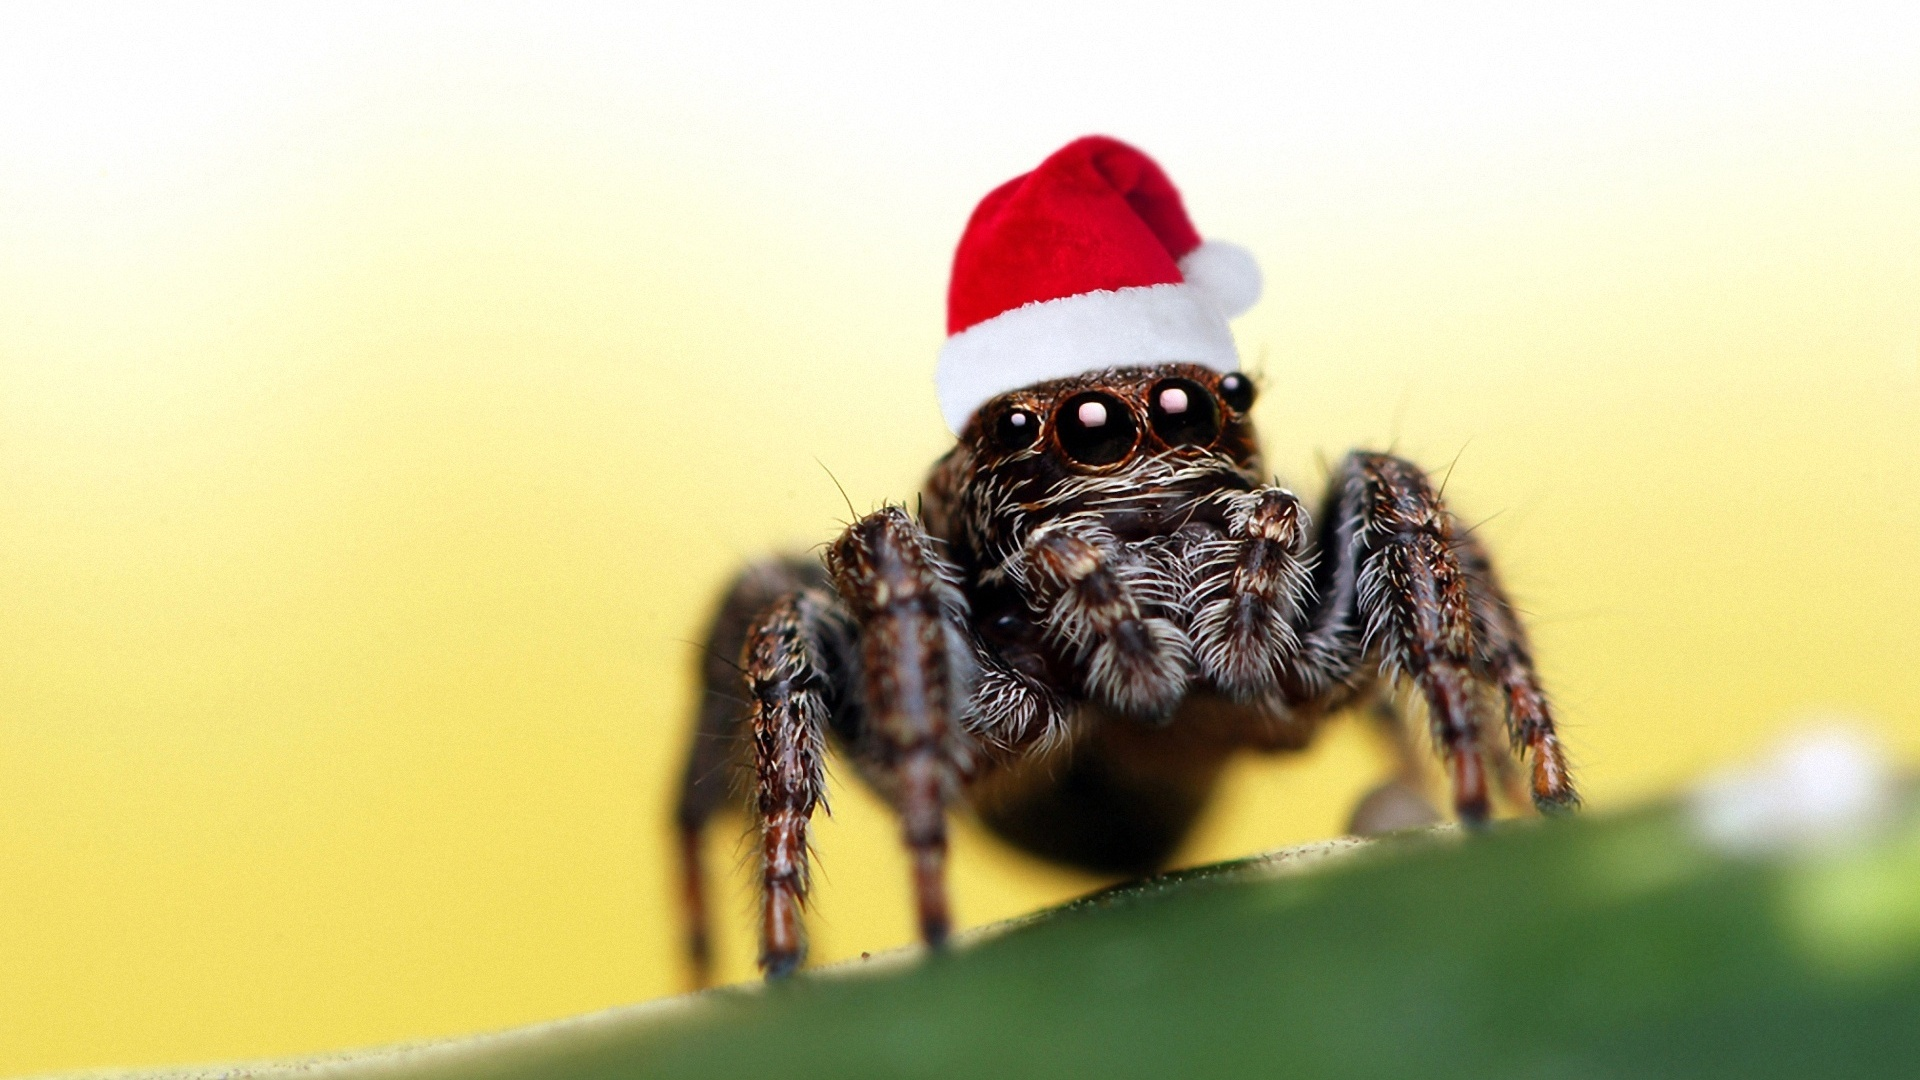 Cute Jumping Spider Wallpaper Fonds D 233 Cran T 233 L 233 Charger 1920x1080 Chapeau De No 235 L D